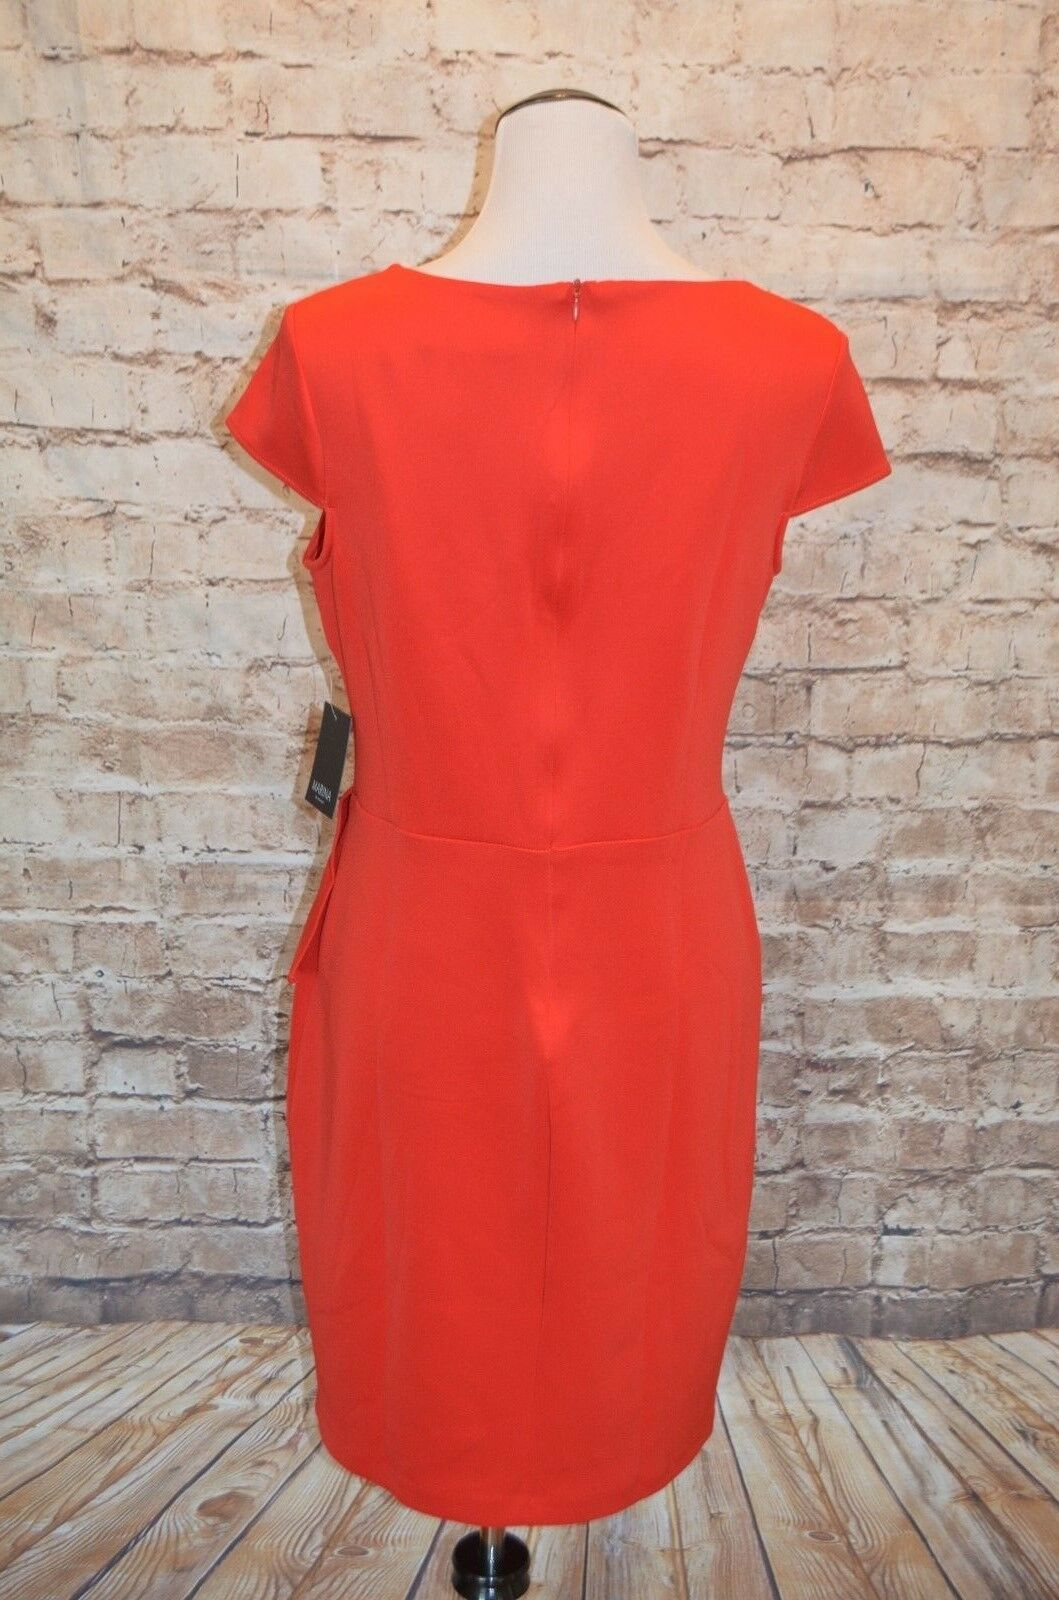 212eb0a54a3 ... Modcloth Exalted Executive Dress Red NWT 12 Peplum Knit cap cap cap  sleeve pleats Marina 82bf72